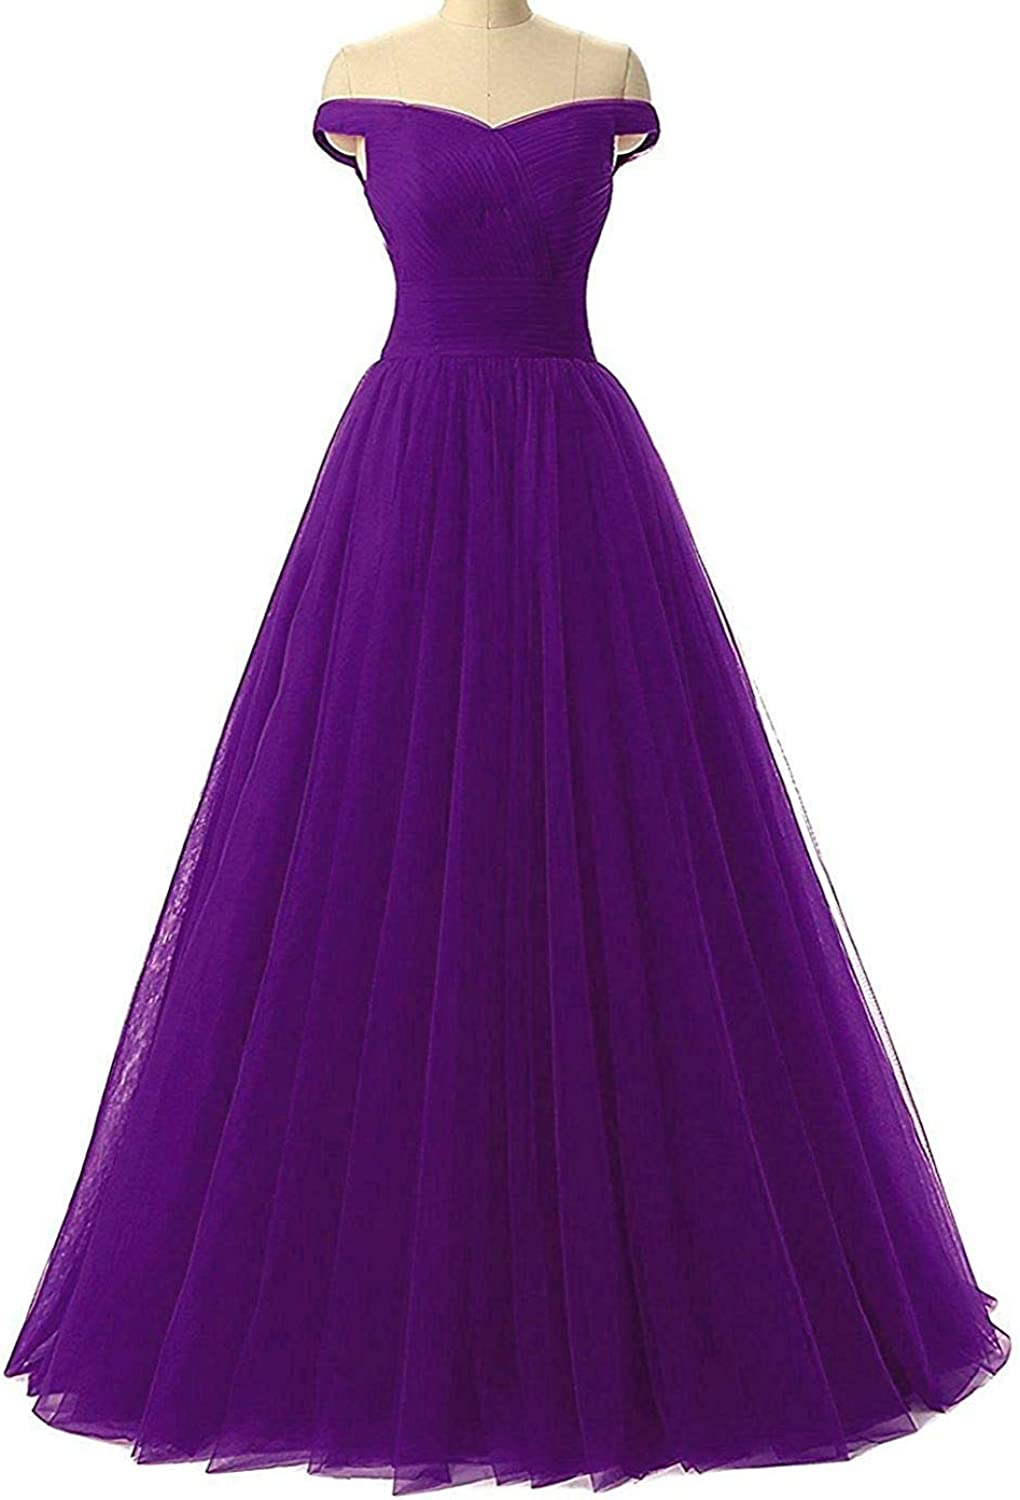 Aishanglina Aline Long Pleated Tulle Party Dress Prom Gown Off The Shoulder with LaceUp Back